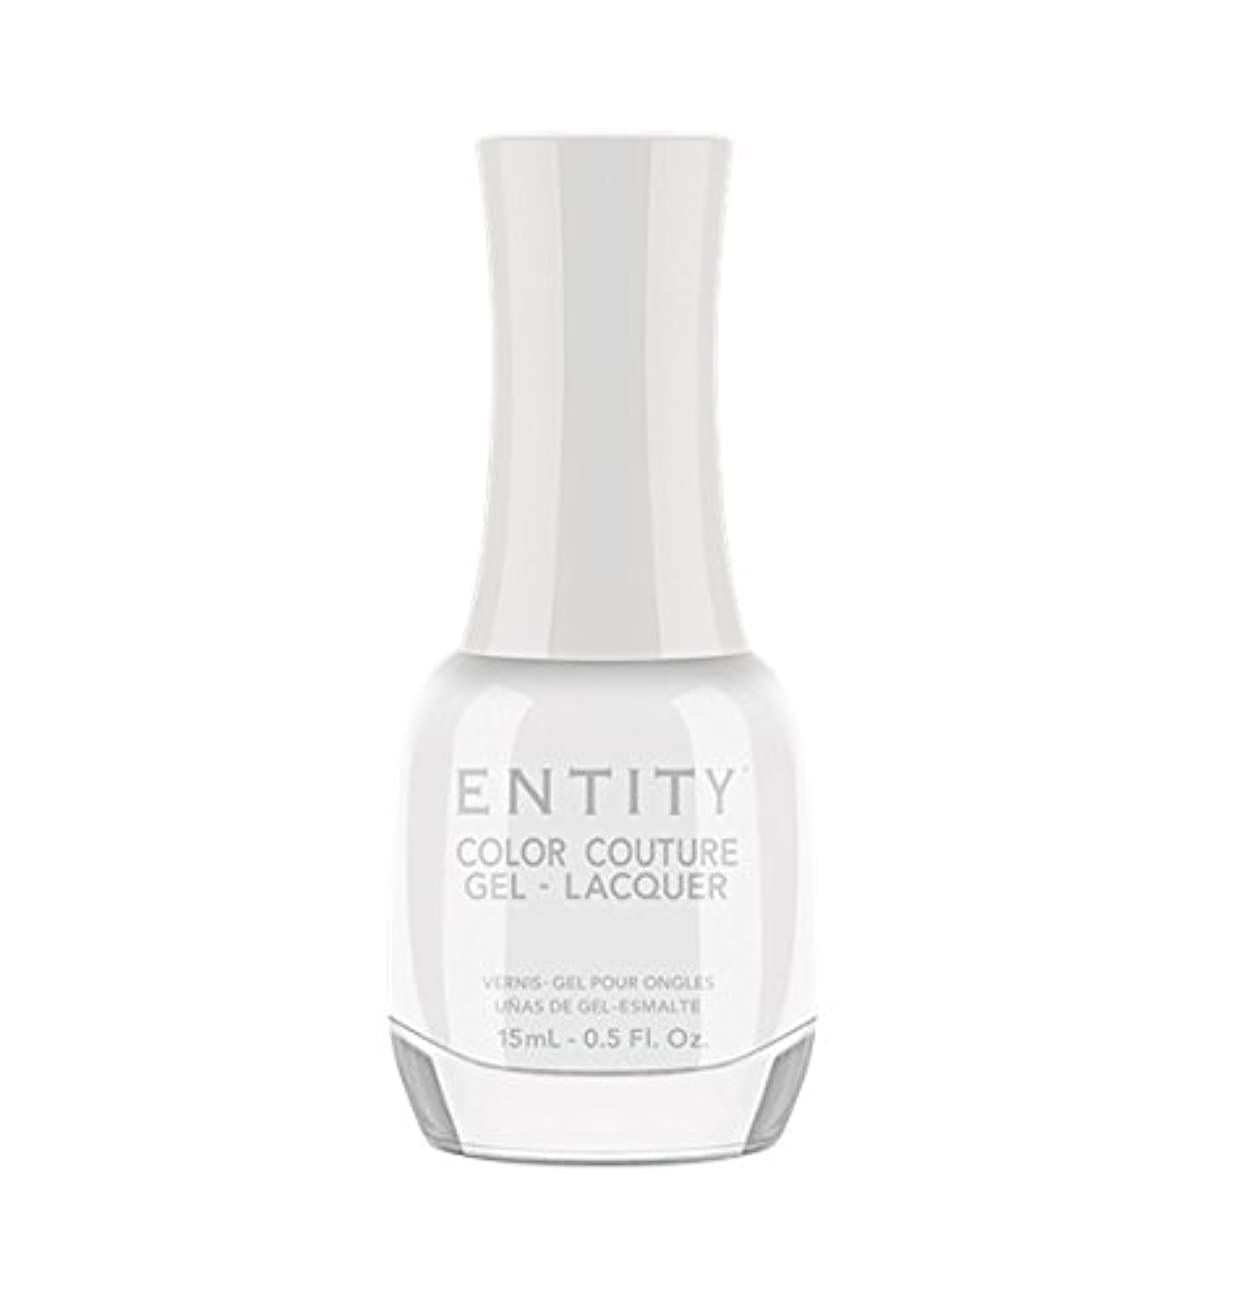 Entity Color Couture Gel-Lacquer - White Light - 15 ml/0.5 oz